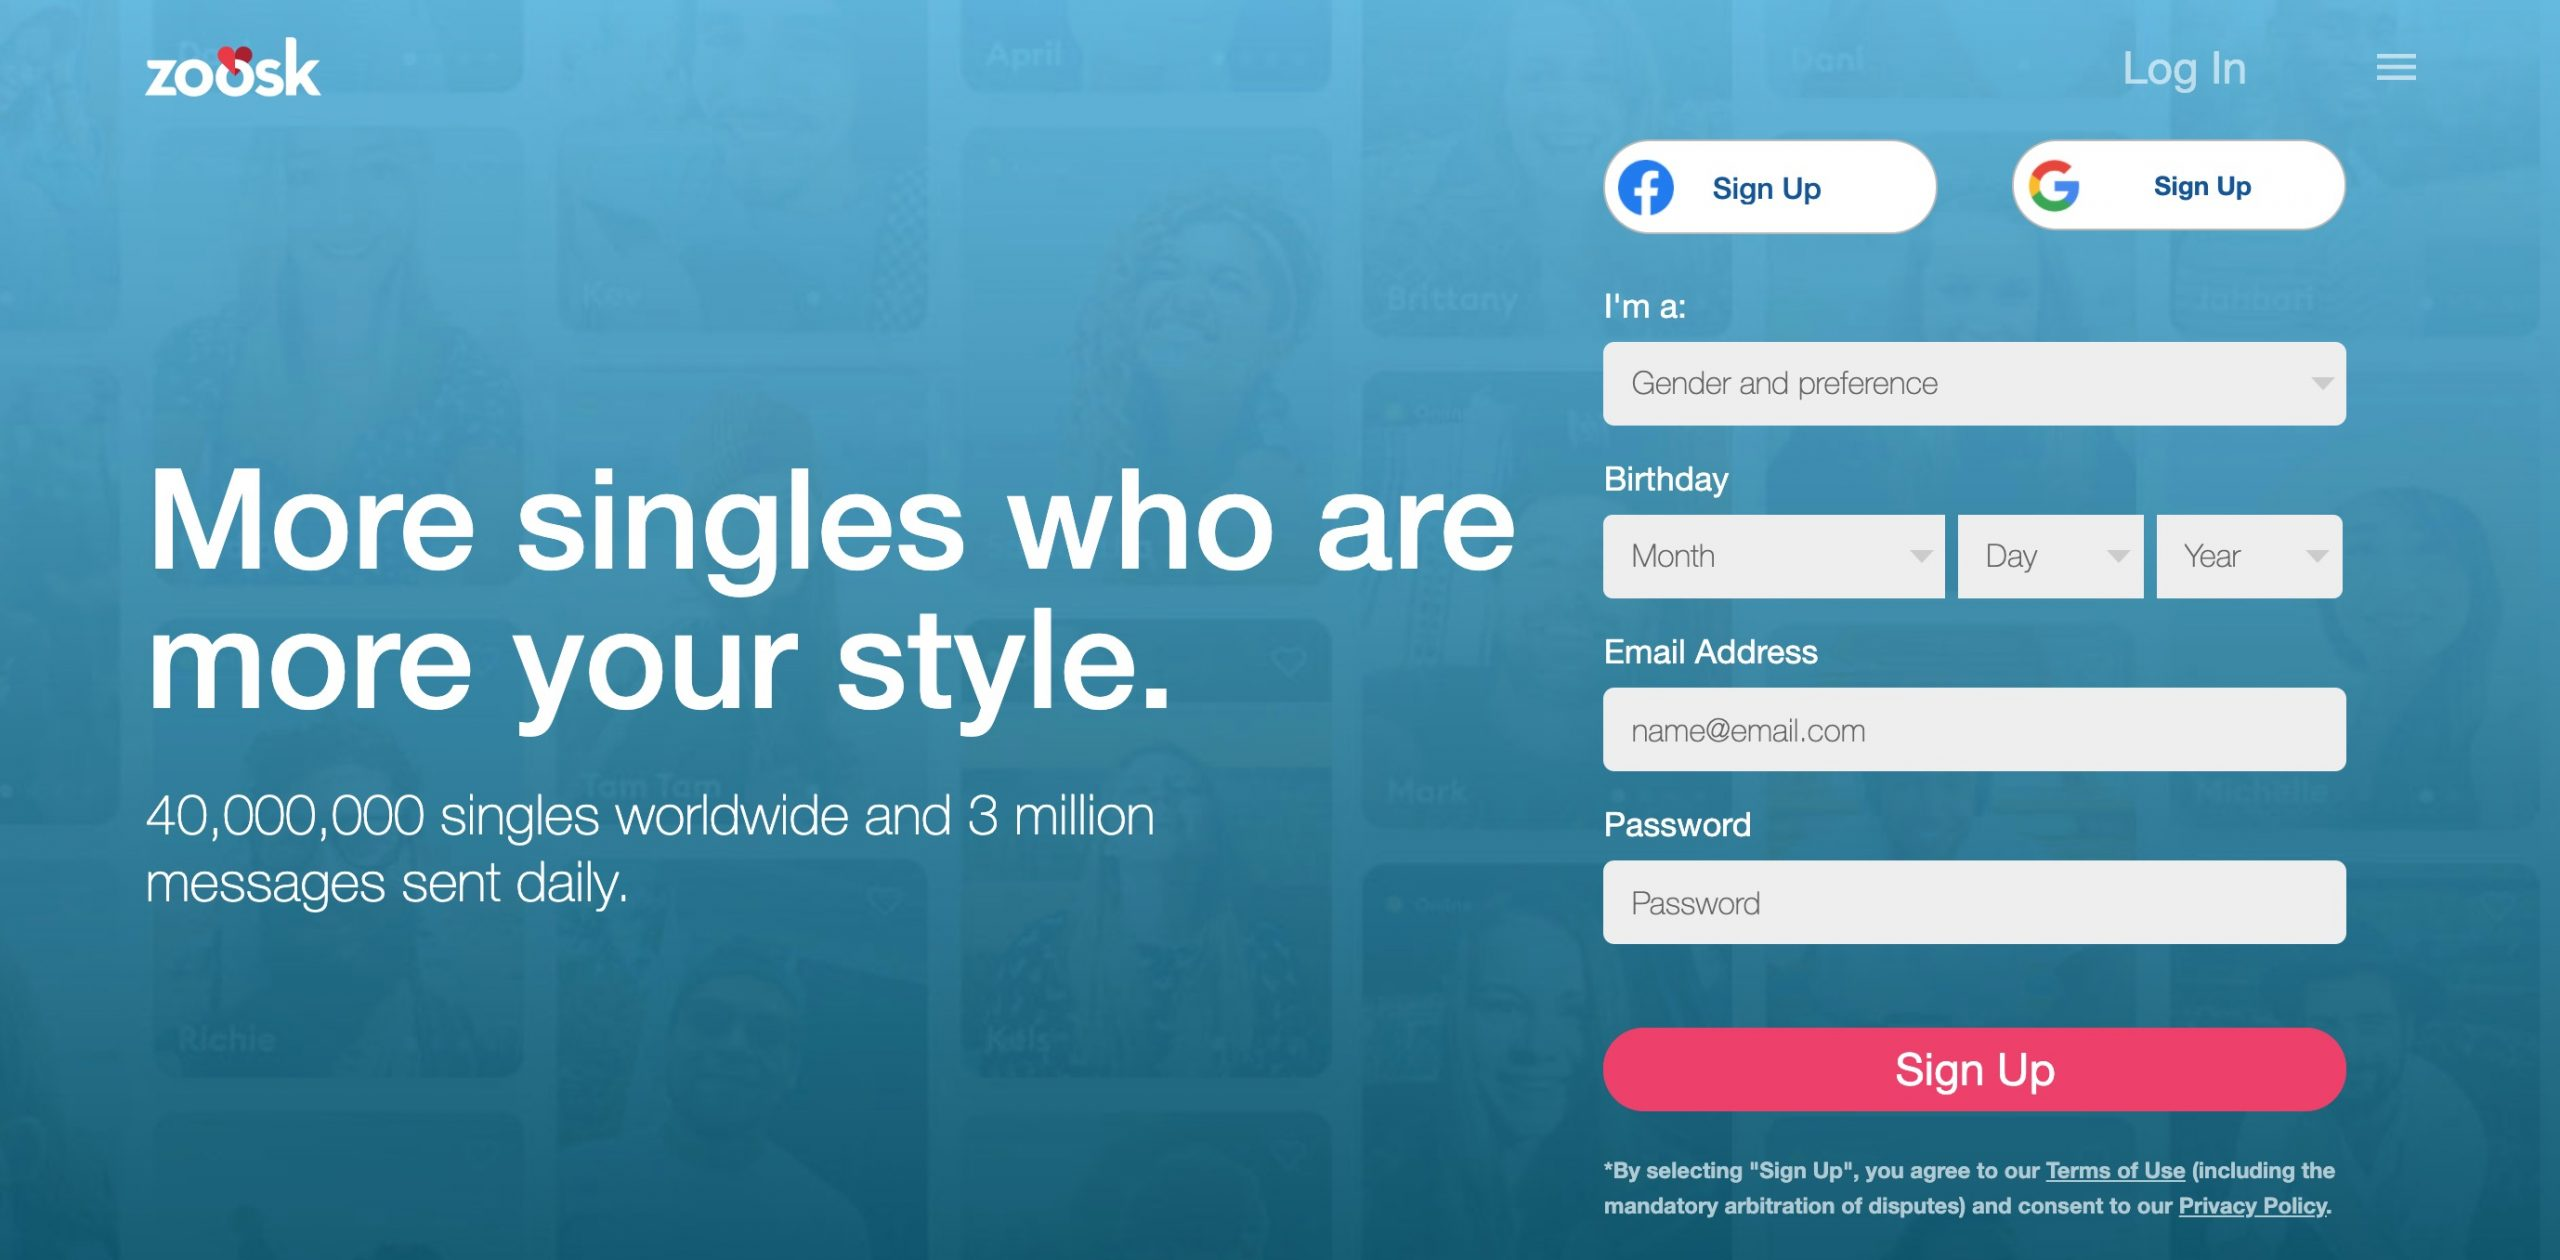 Zoosk main page